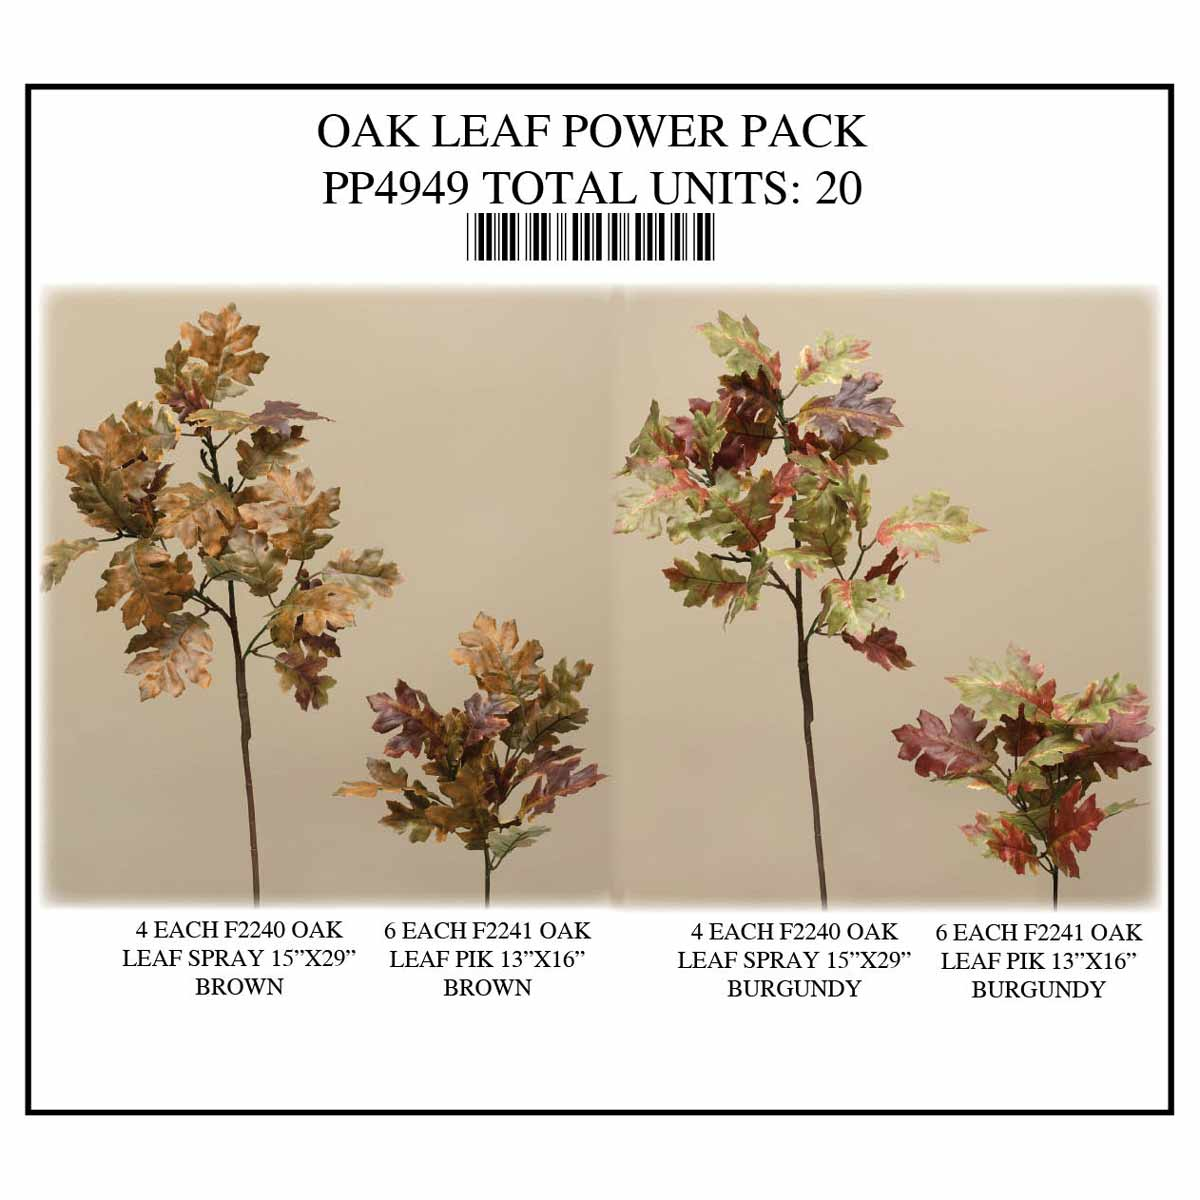 OAK LEAF POWER PACK 20 UNITS PP4949